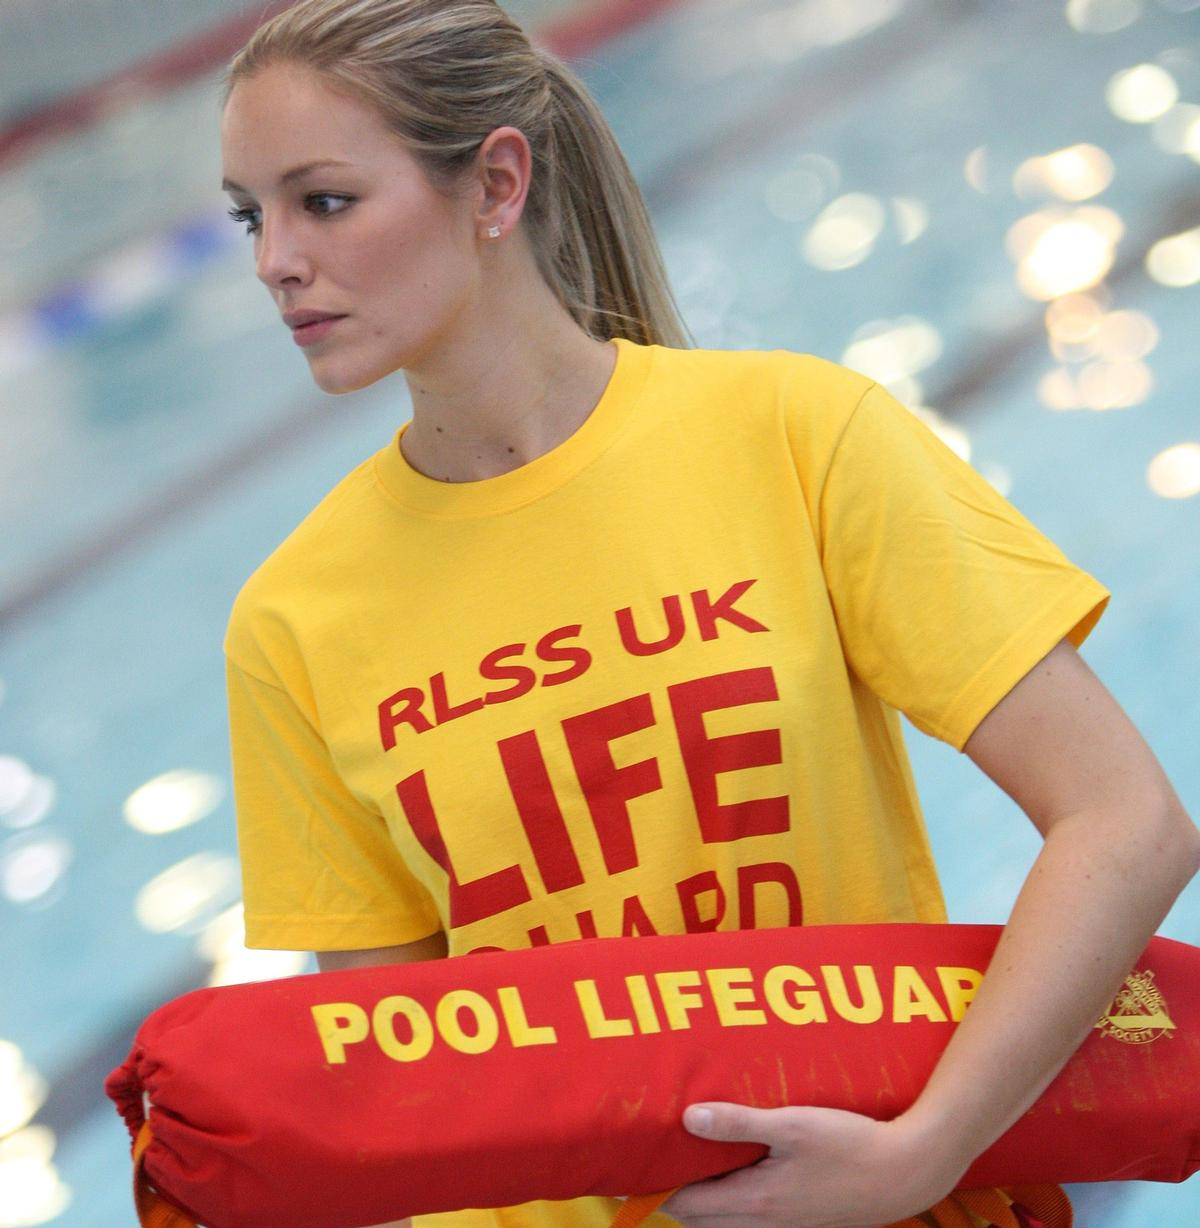 The partnership will look to showcase career opportunities in lifeguarding to help combat the shortage of lifeguards in some areas of the UK